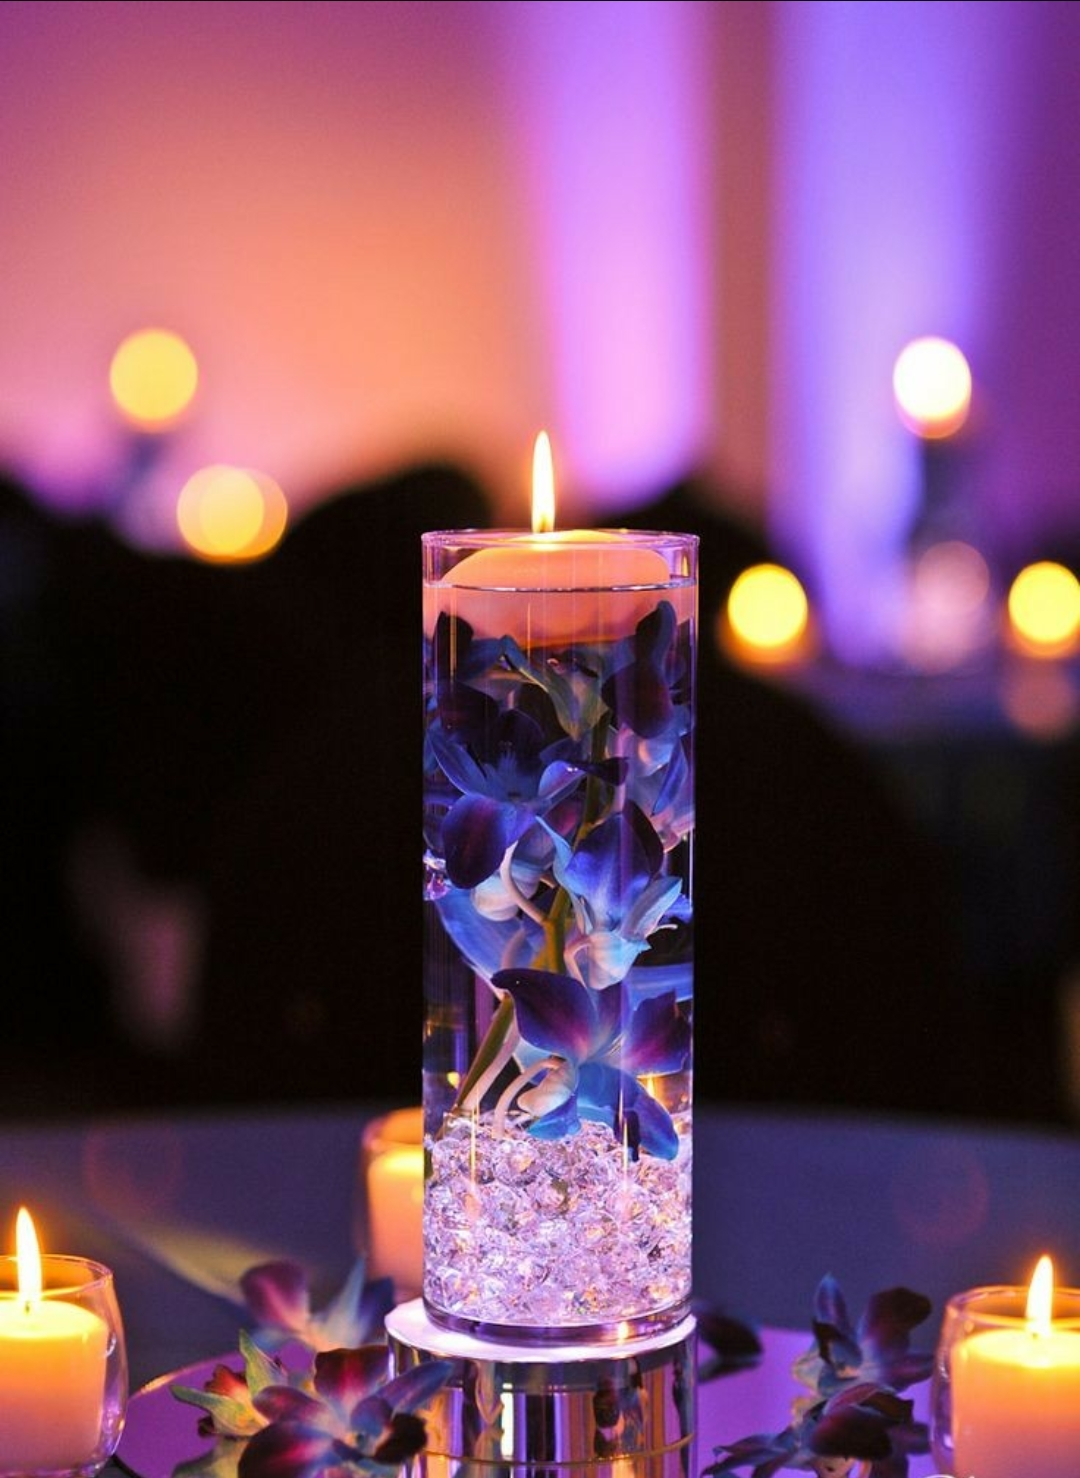 Cylinder Vase with candle & flower